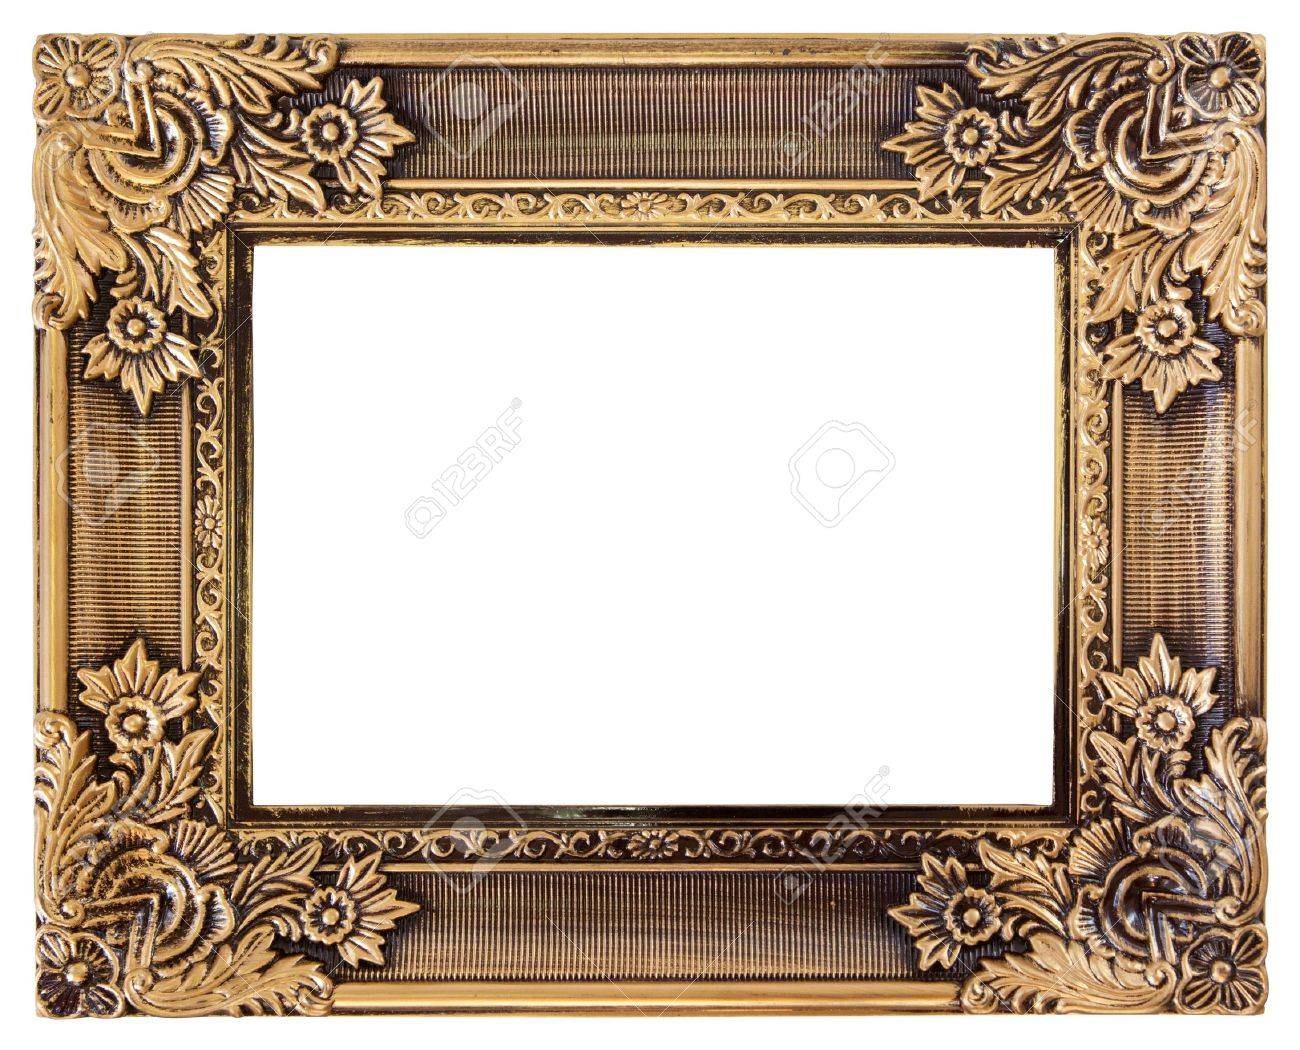 antique love gold frame isolated on white - 18684026